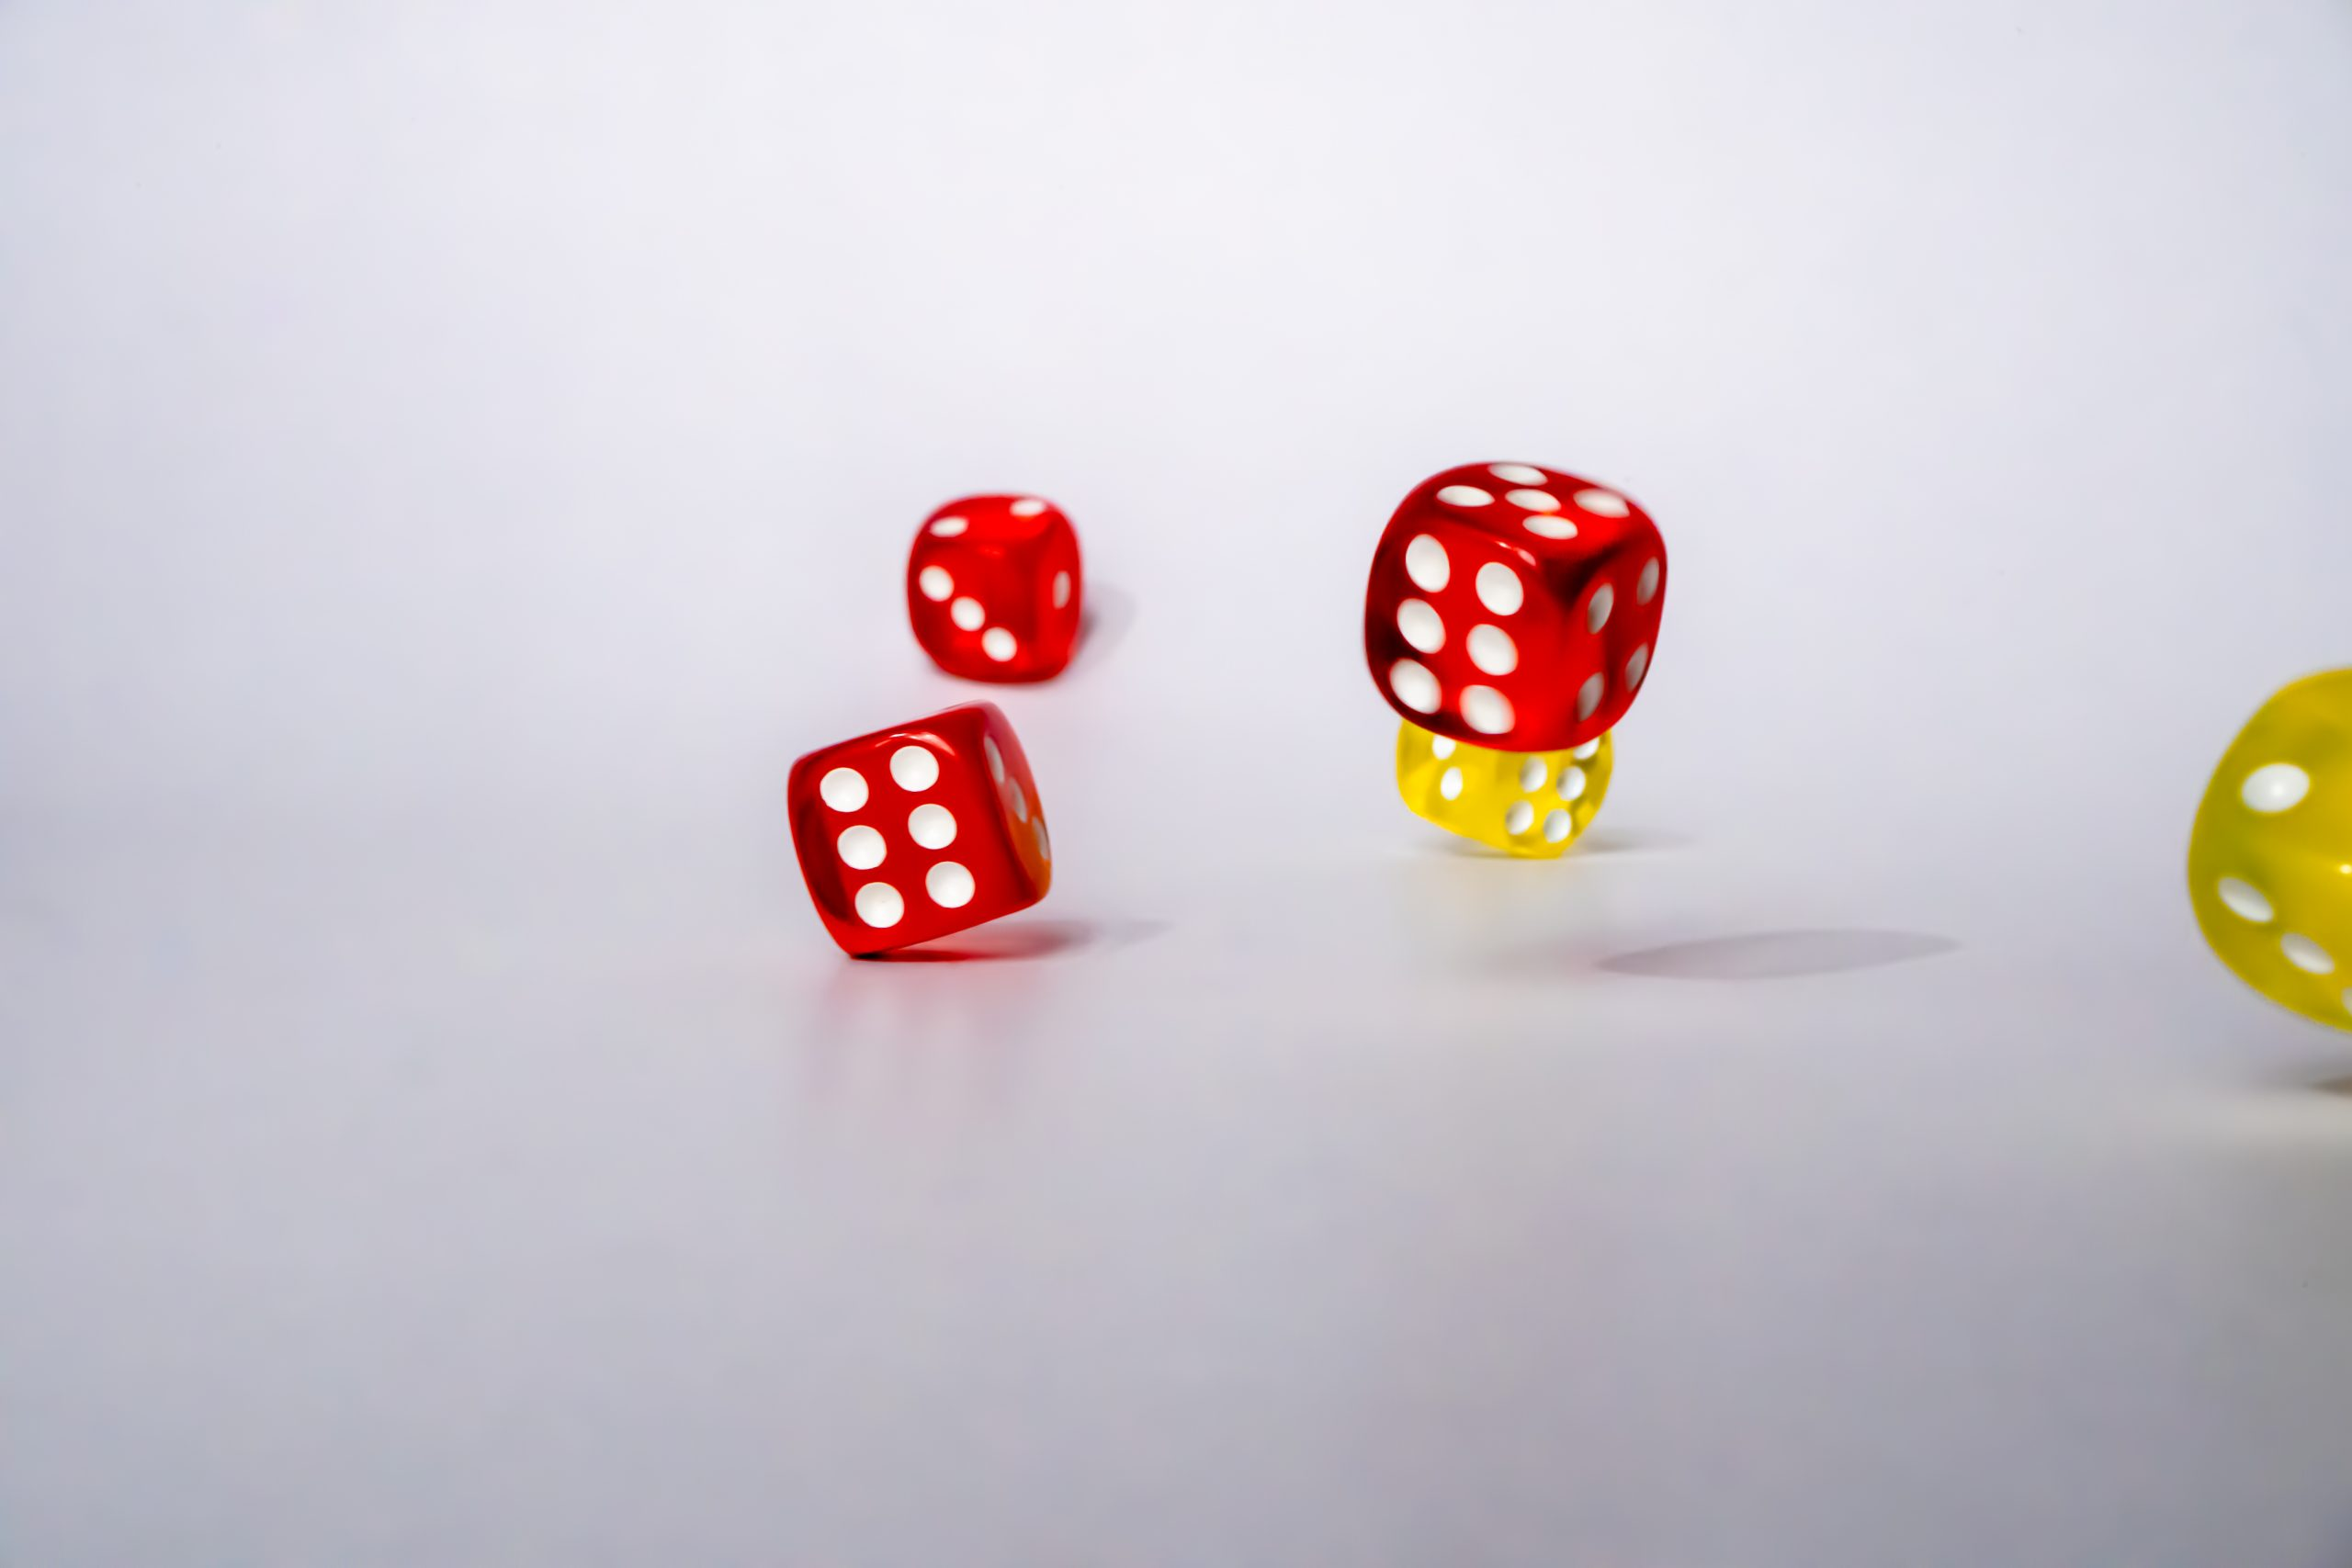 Number six on rolling dice